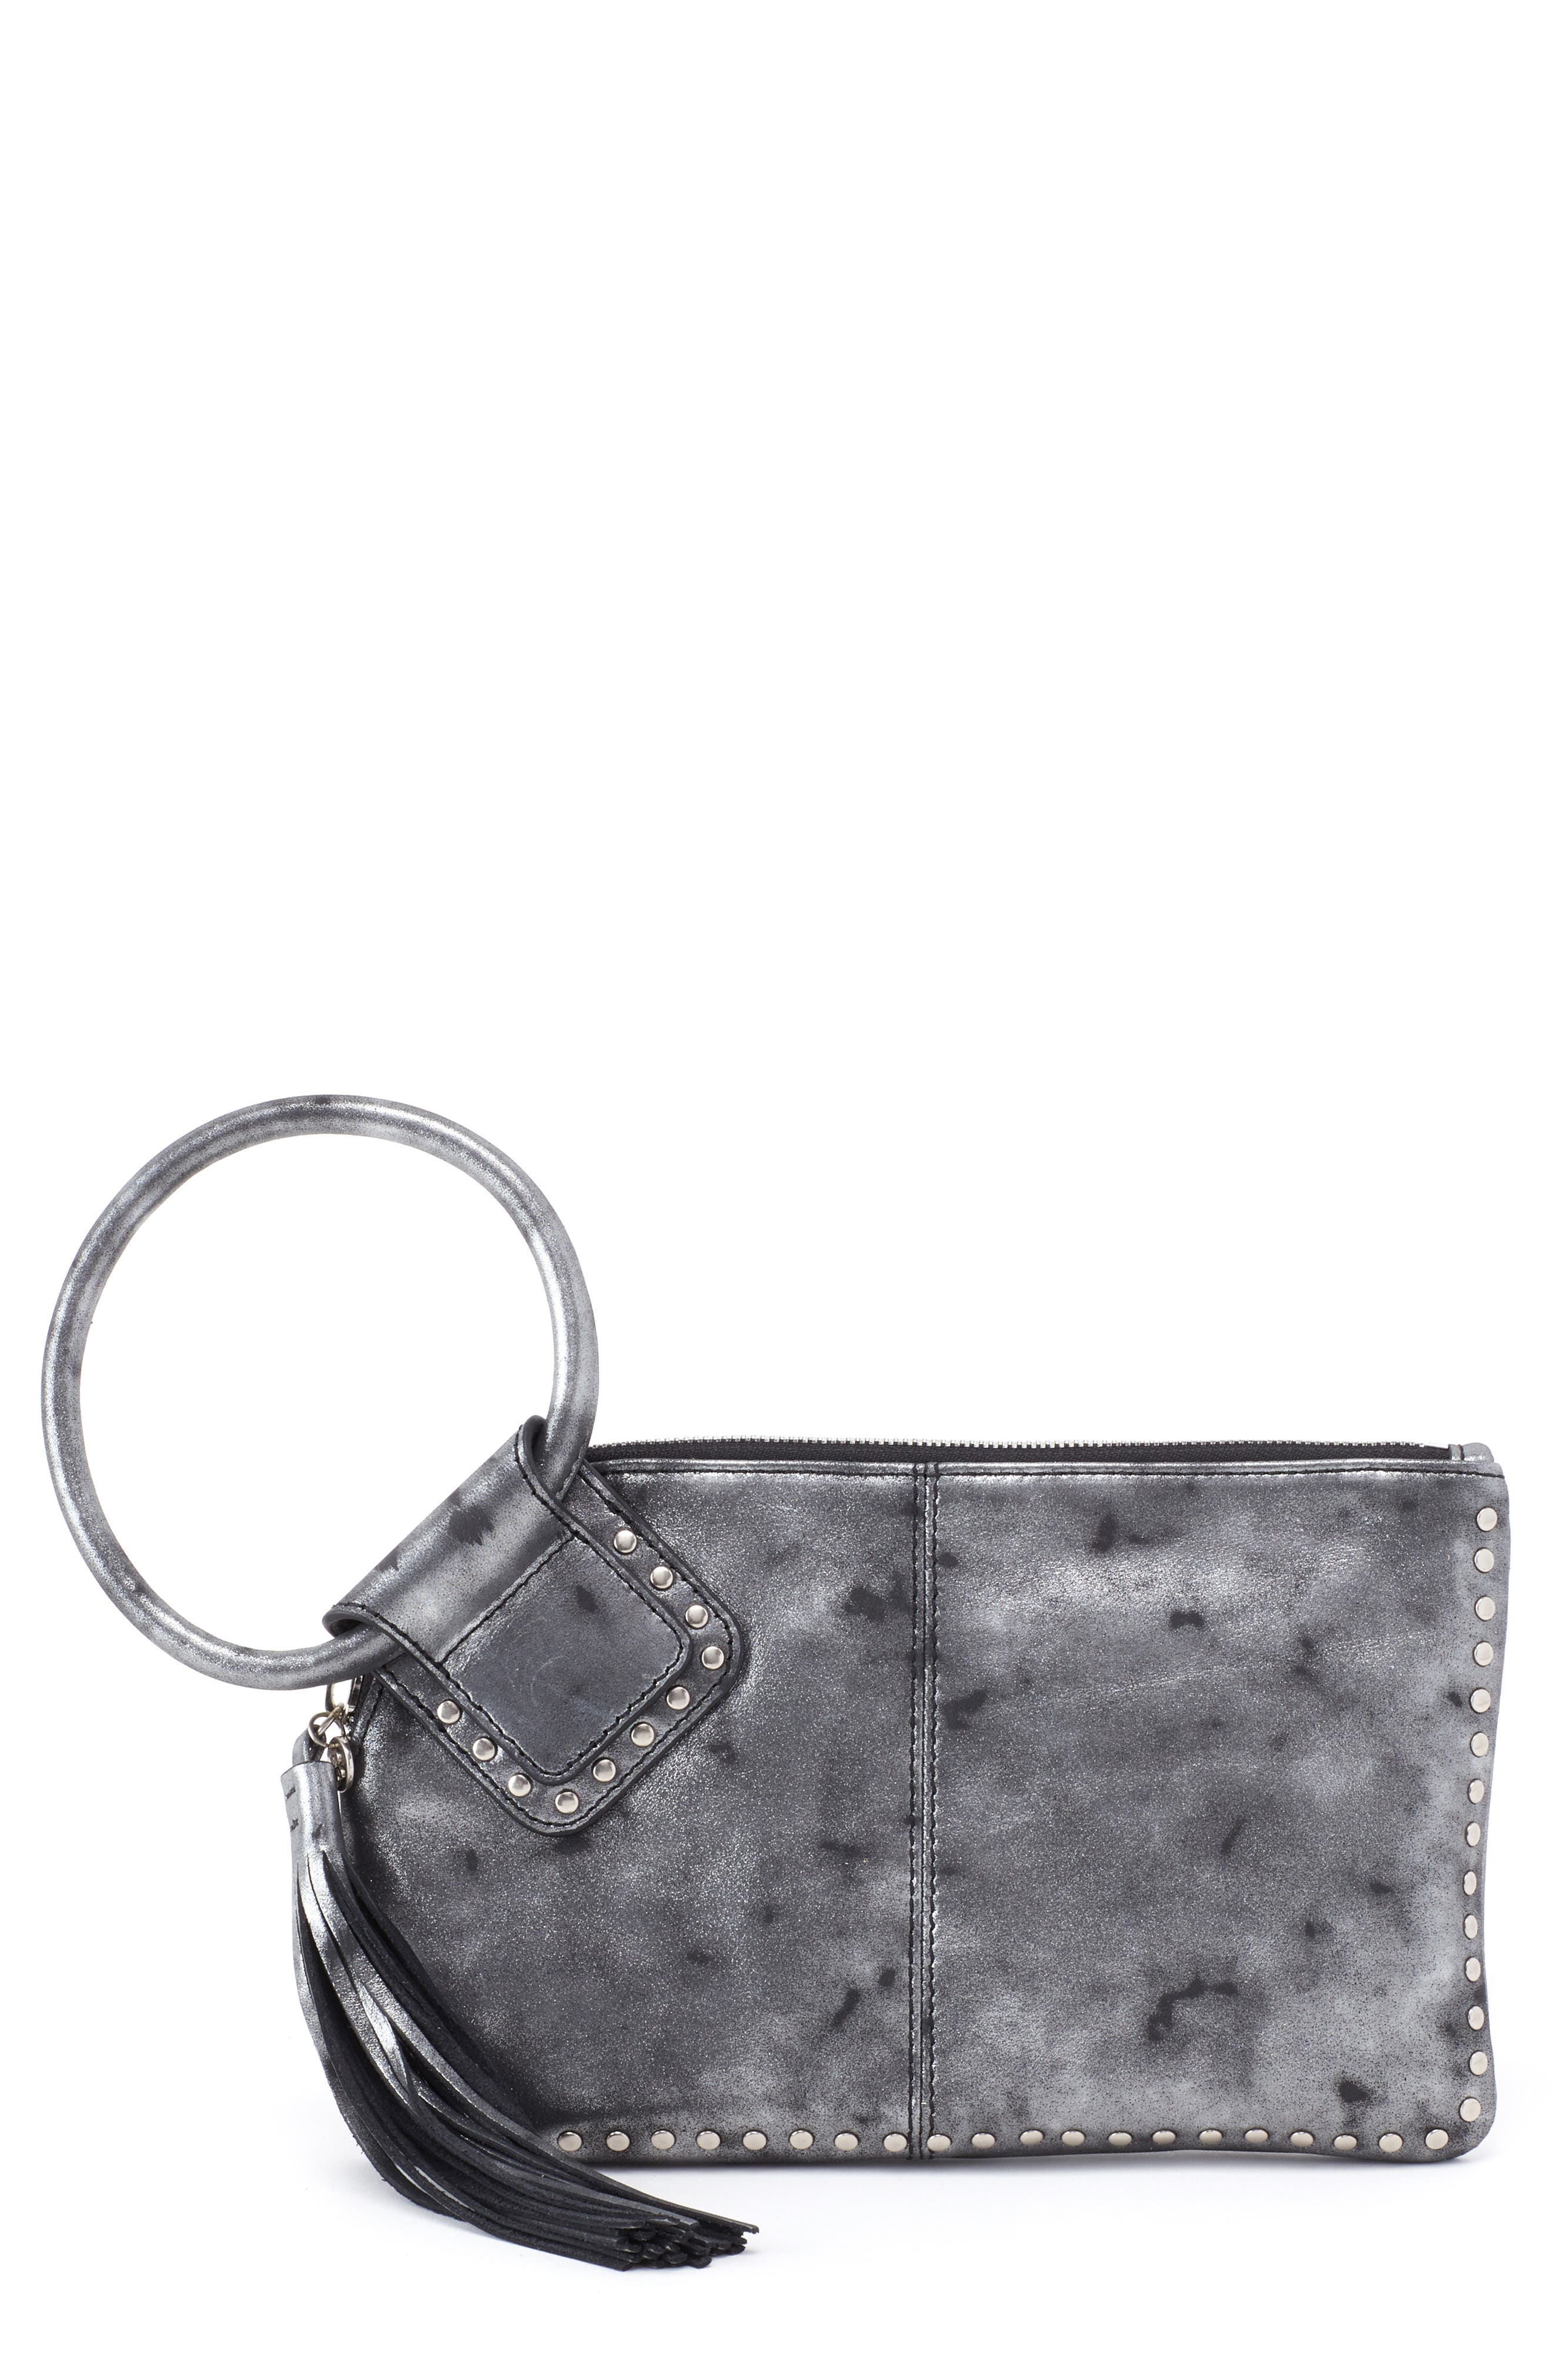 Sable Calfskin Leather Clutch,                             Main thumbnail 1, color,                             Smoke